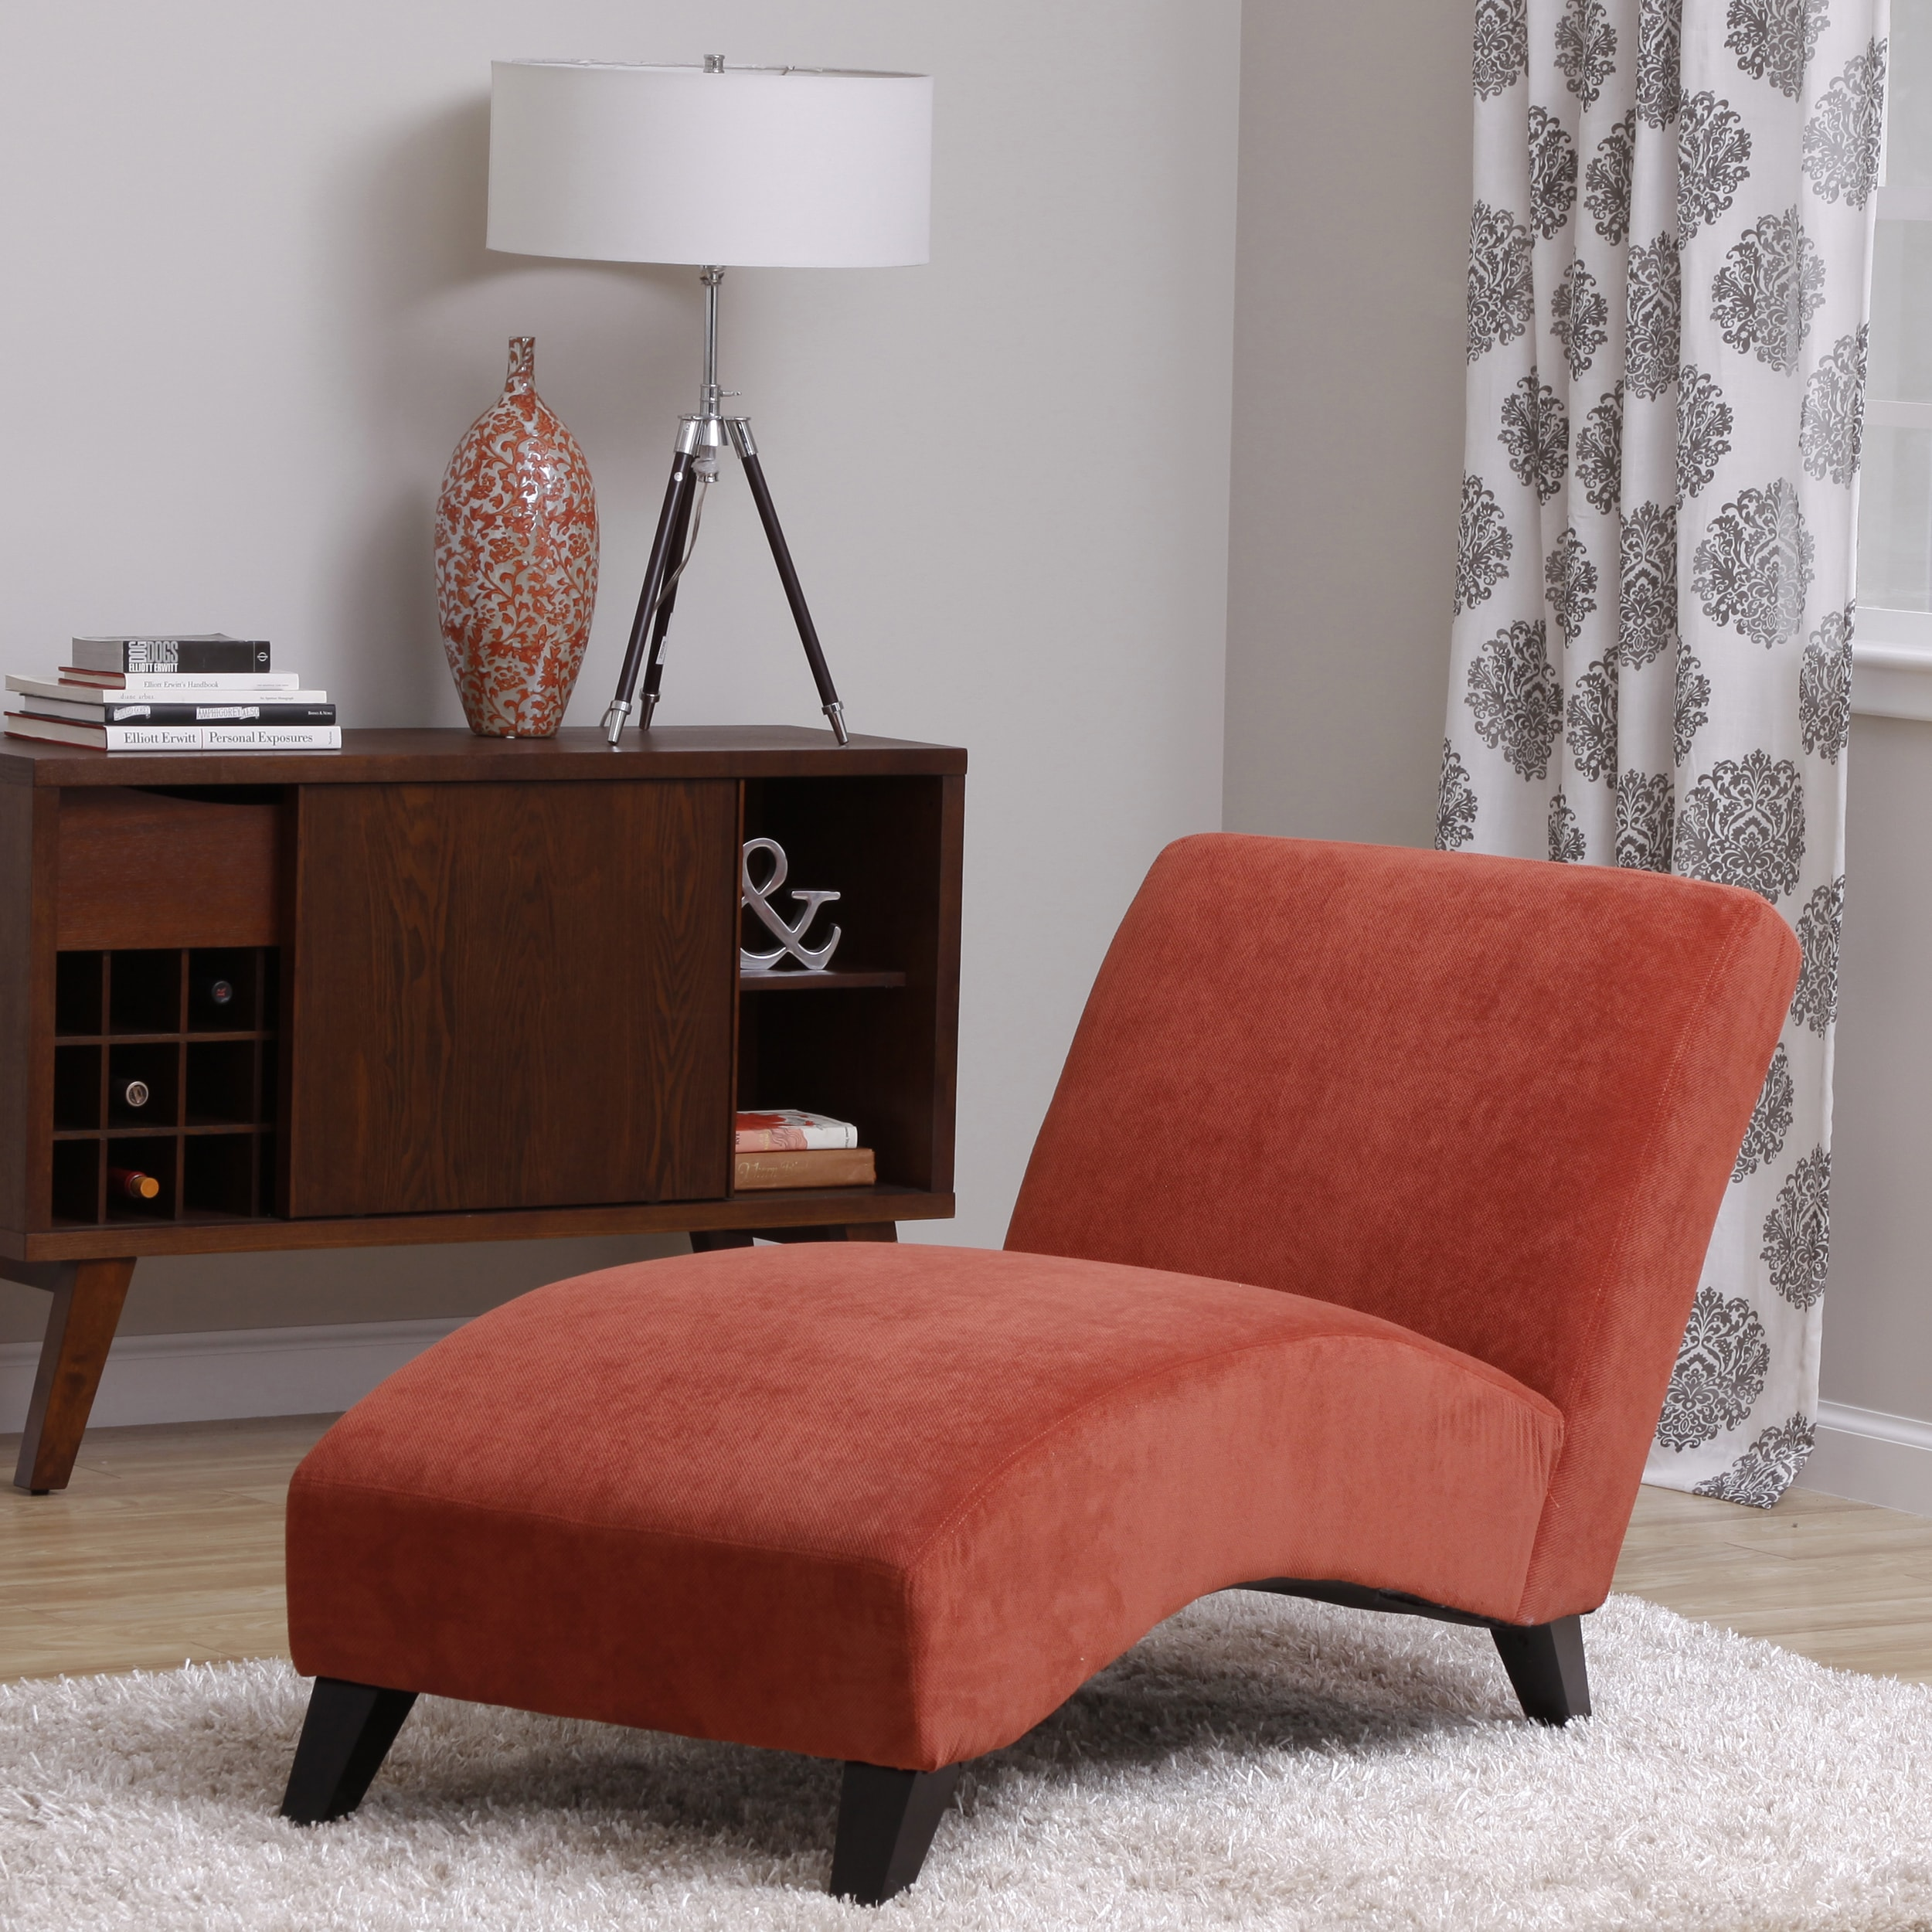 Orange Living Room Chair Bella Orange Paprika Chaise Overstock Shopping Great